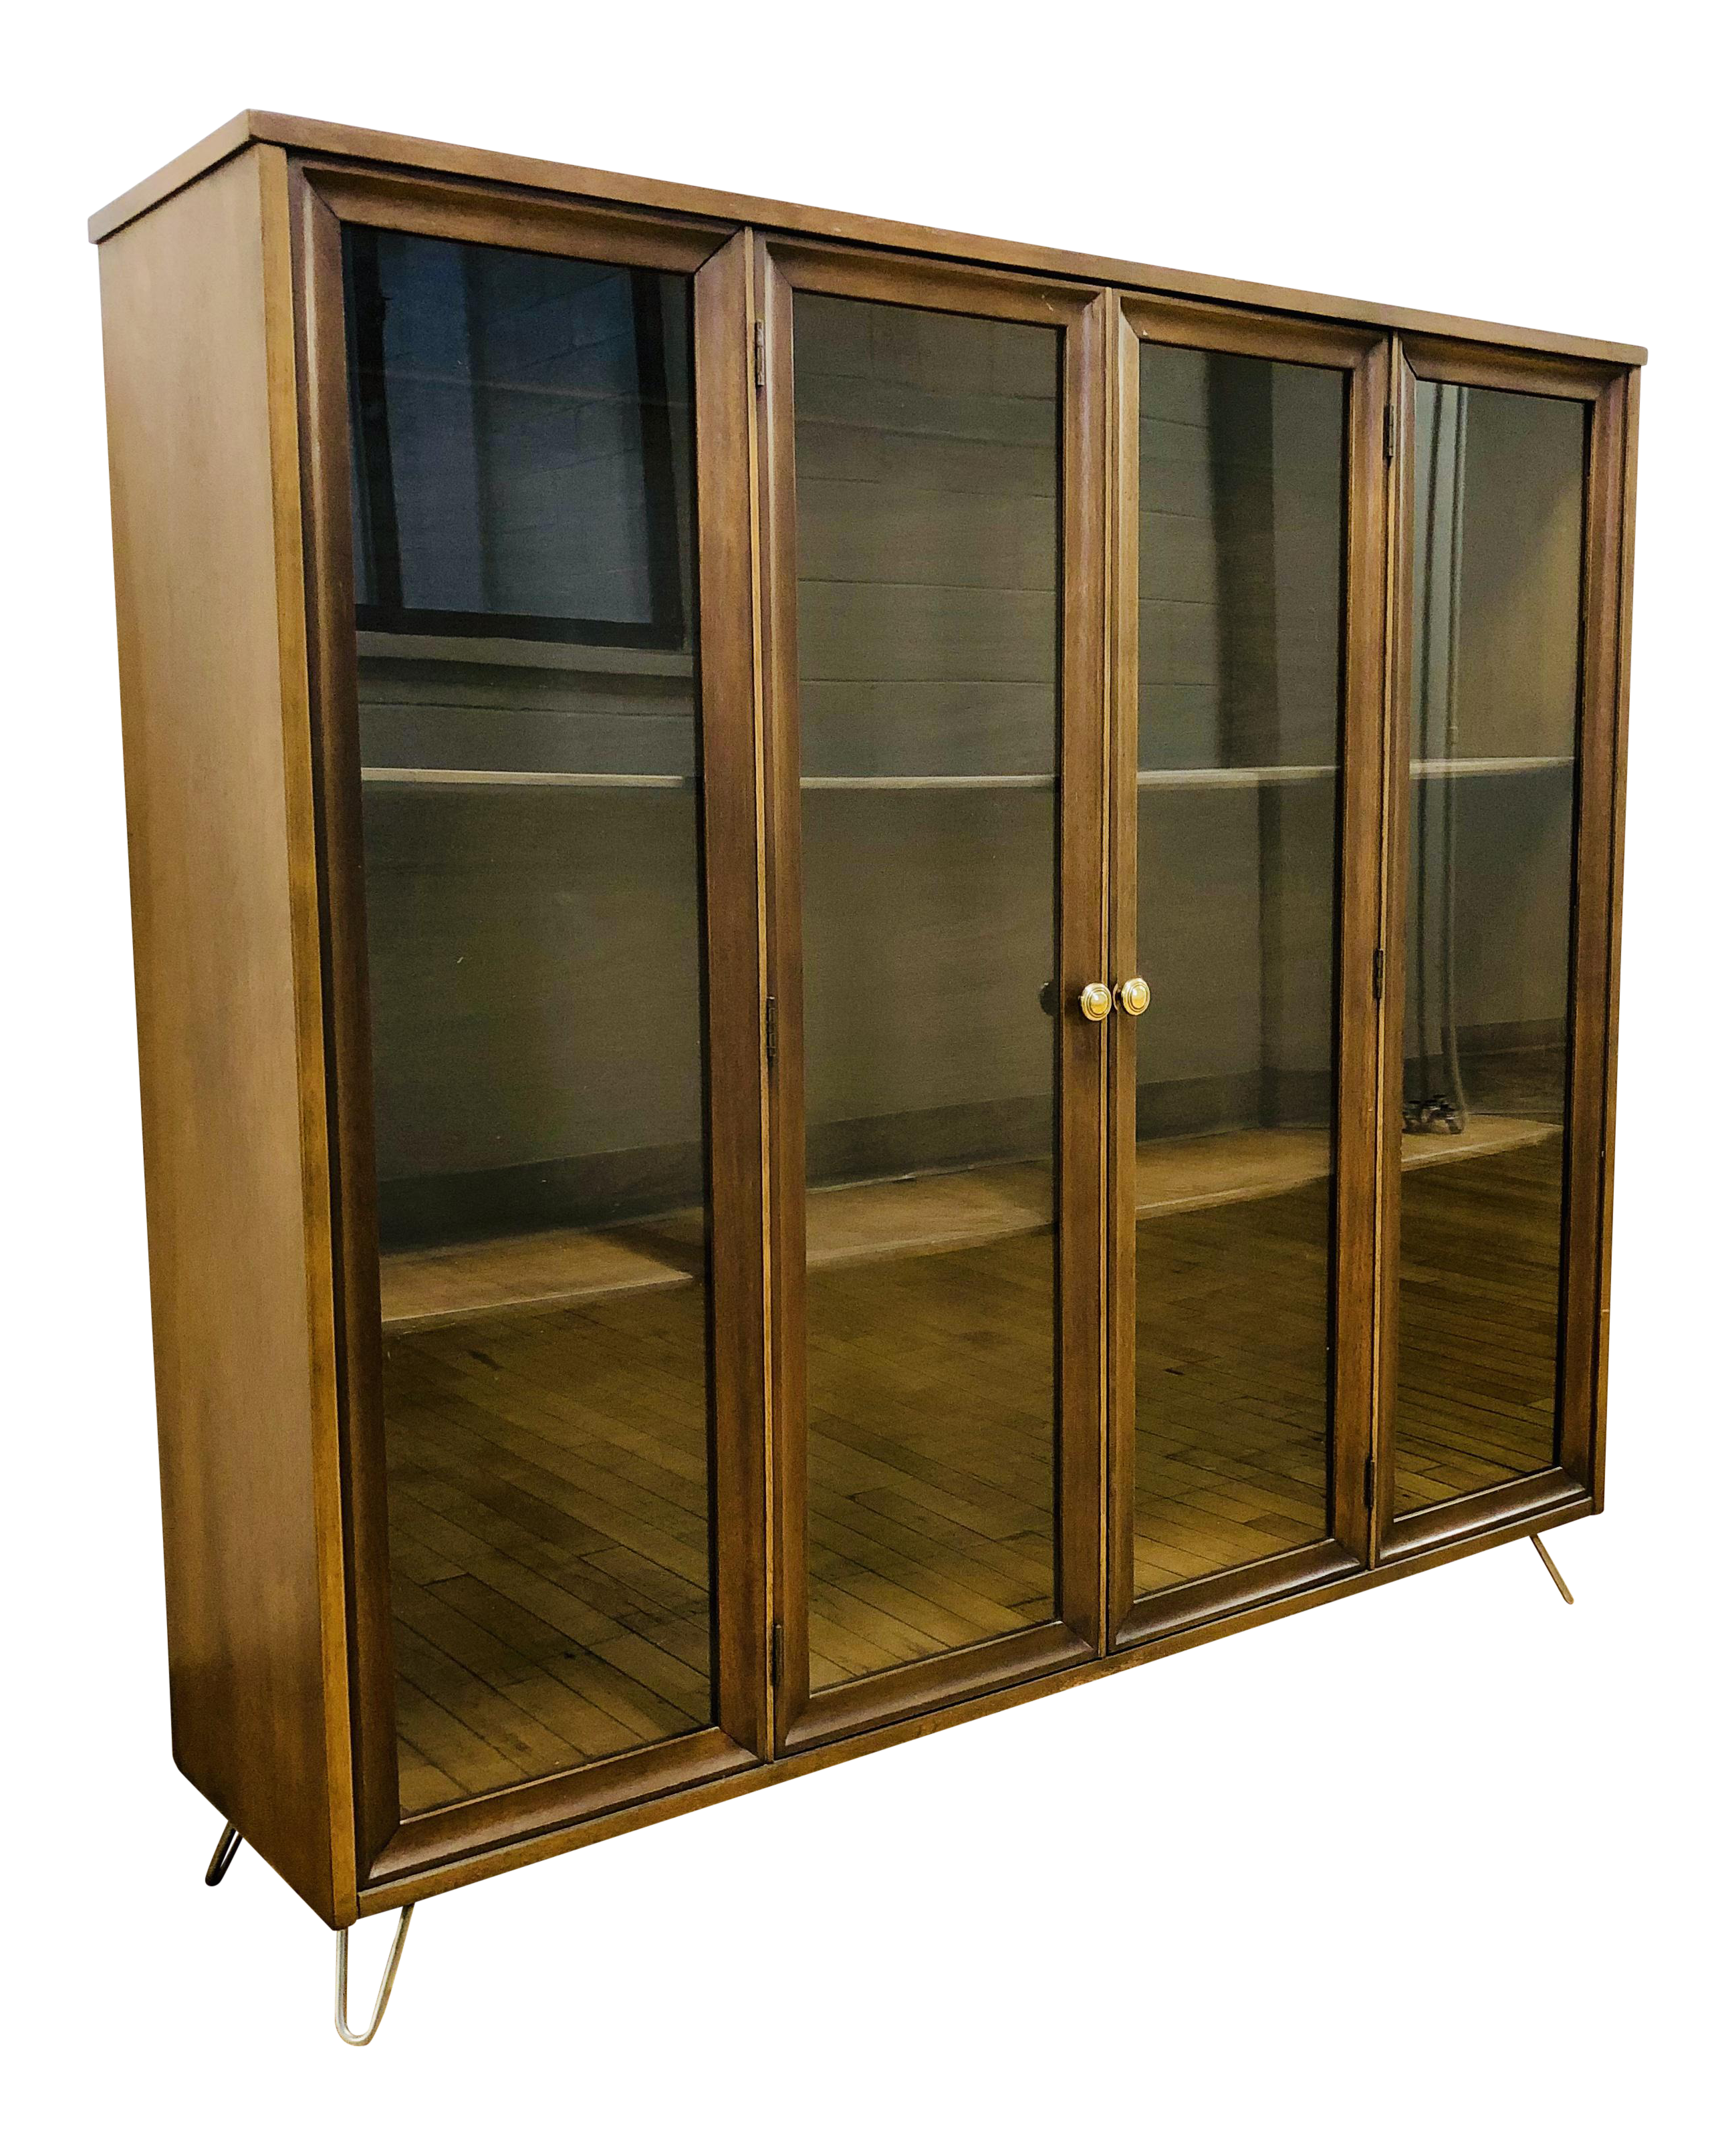 gently used broyhill furniture off chairish mid century modern brasilia display case shelving unit custome hairpin legs discontinued end tables industries boston chair round iron